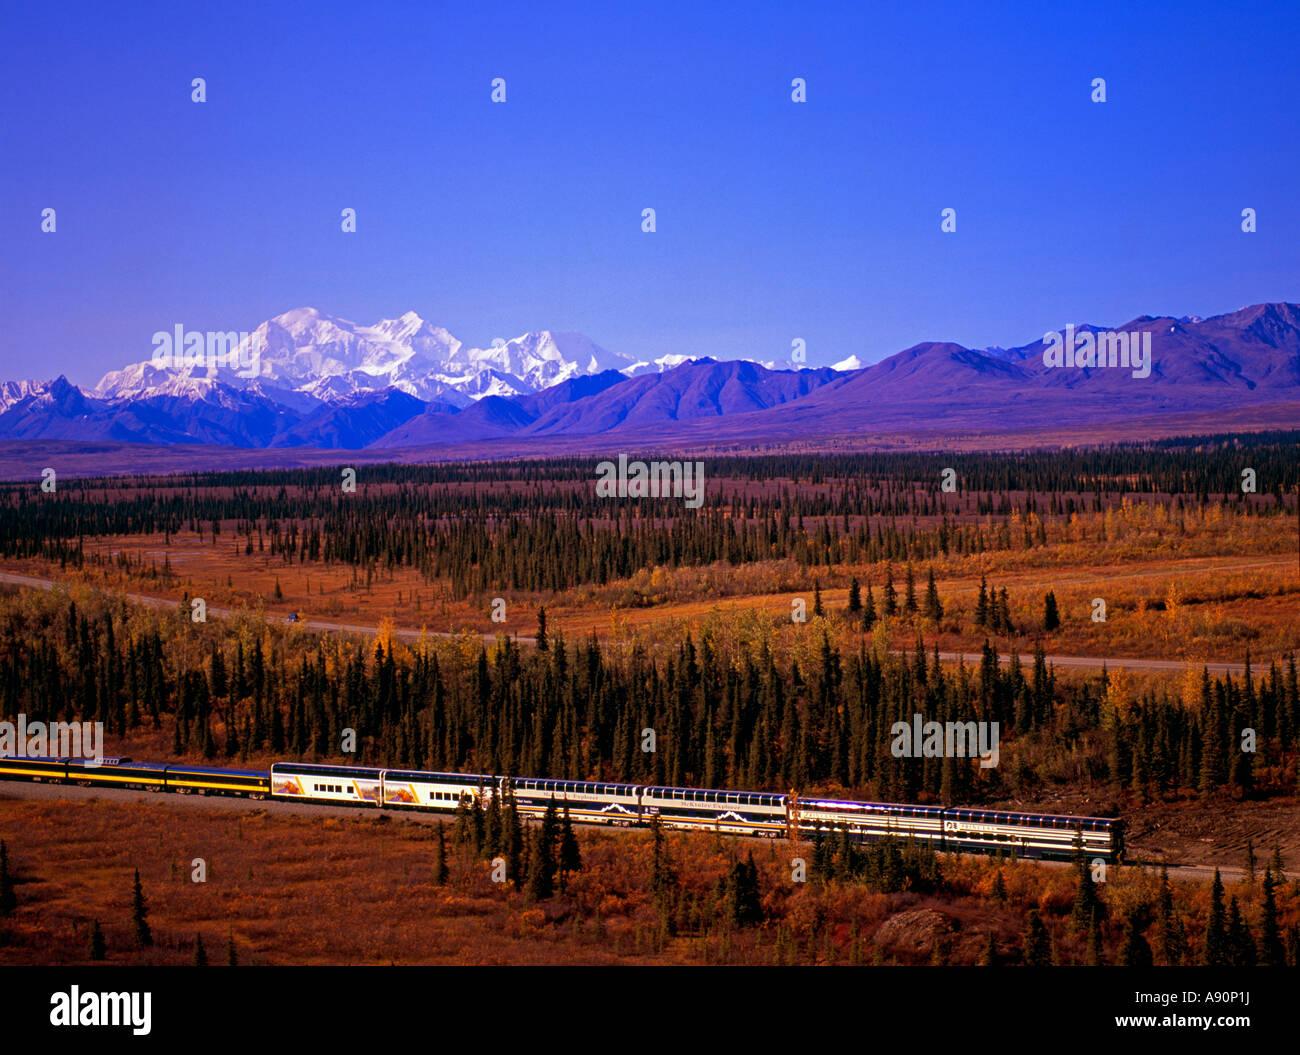 The Alaska Railroad and the Alaska Range and Mt. McKinley. - Stock Image